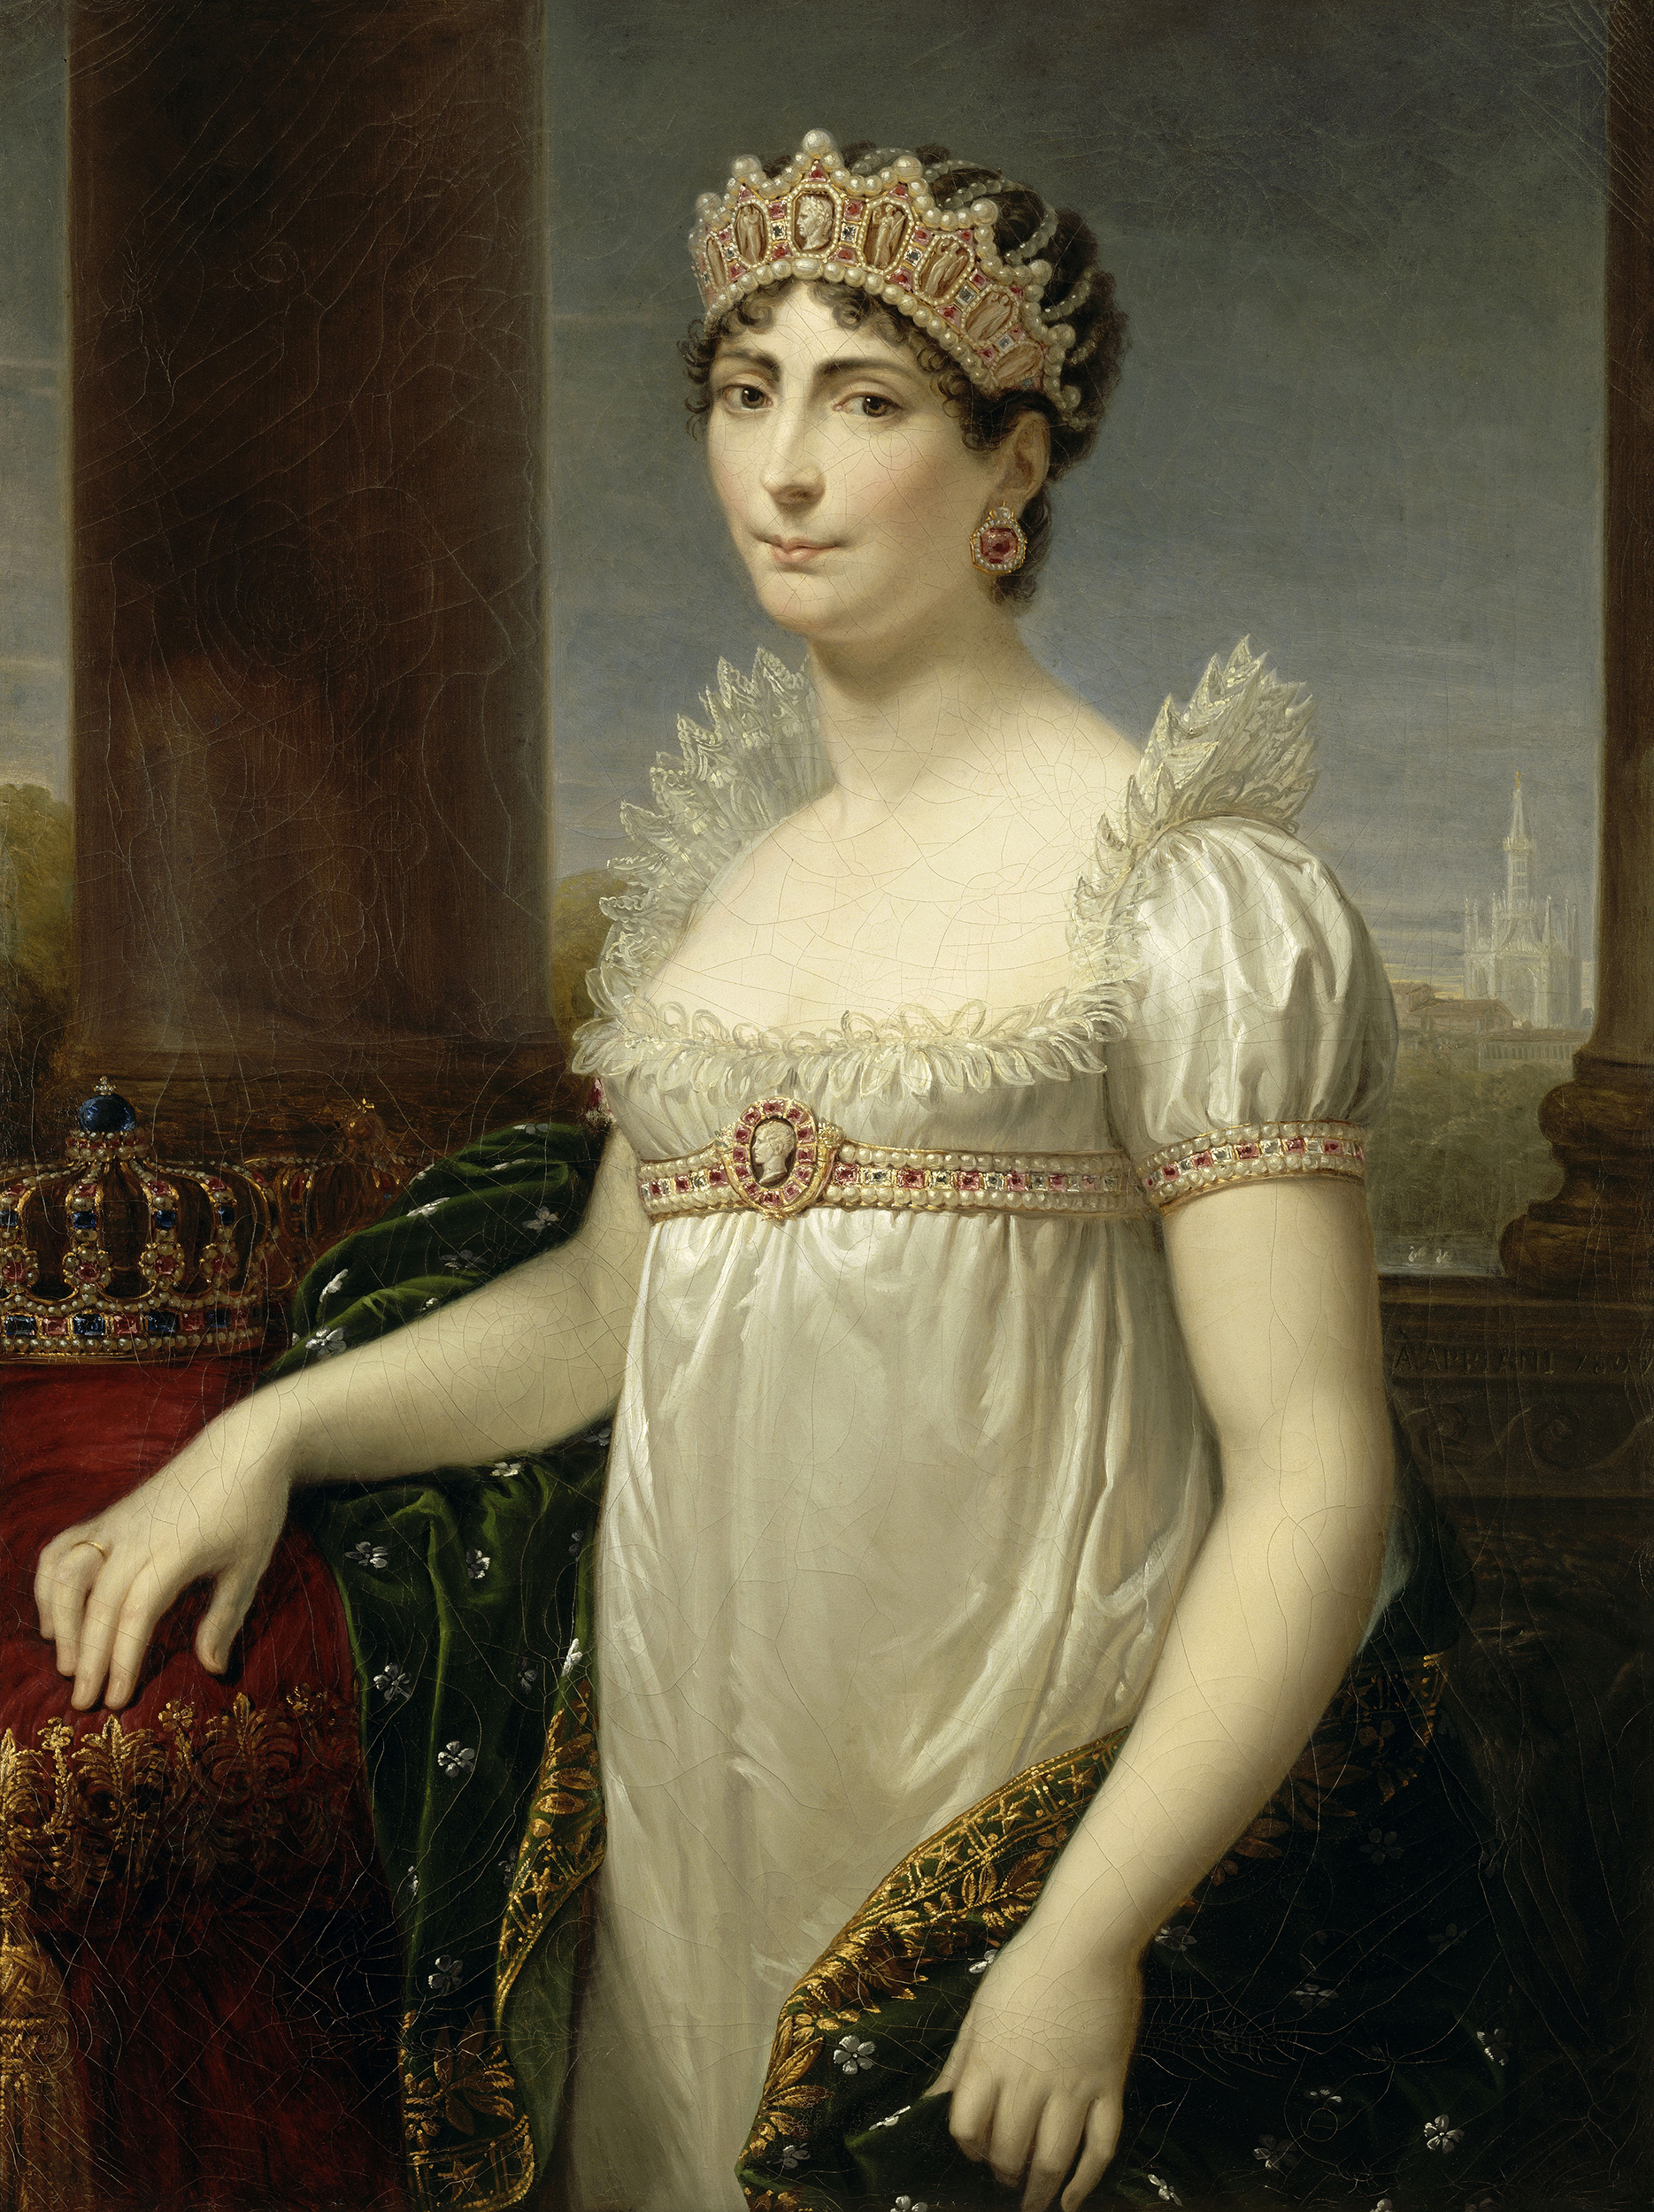 Portrait of Joséphine (1763-1814), Empress consort of the French (1804-1809), Queen consort of Italy (1805-1809), Duchess of Navarre (1810), 1804 | Portraits of Kings